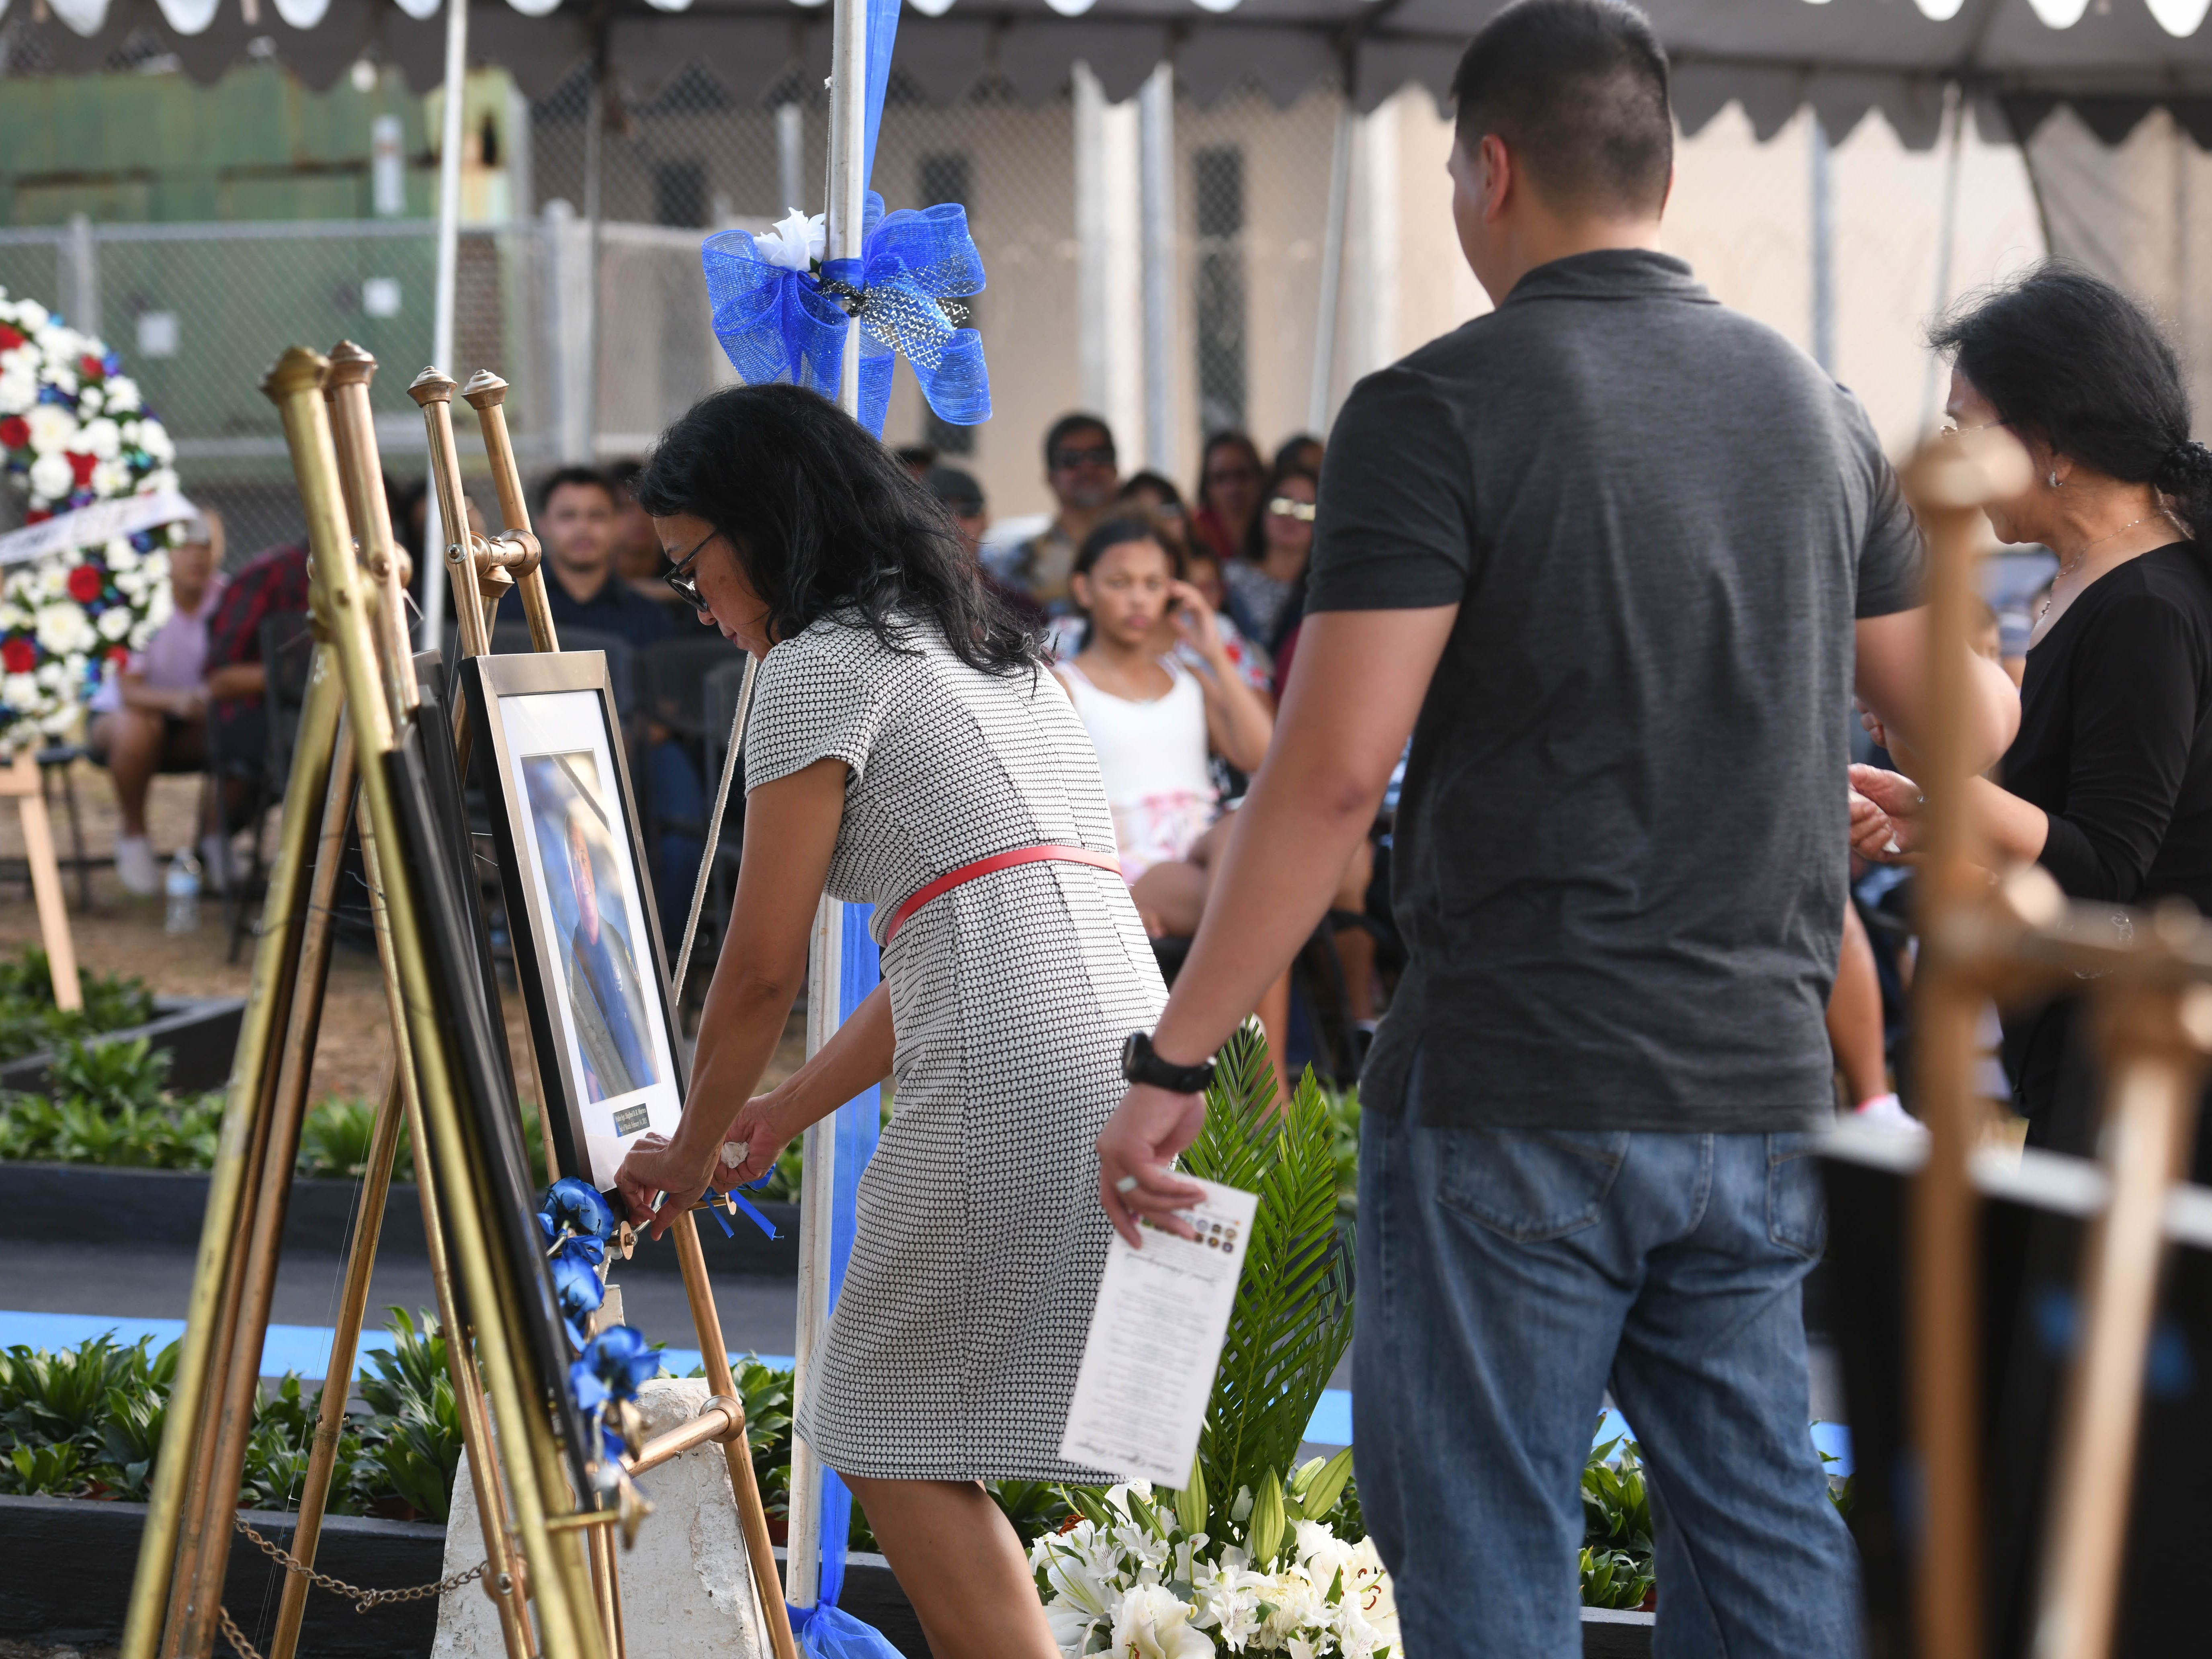 The service of Police Sgt. Siegfred Mortera is remembered during the Peace Officers' Memorial service and wreath laying ceremony held at the Guam Police Department's Badge memorial Park in Hagåtña on Wednesday, May 15, 2019.